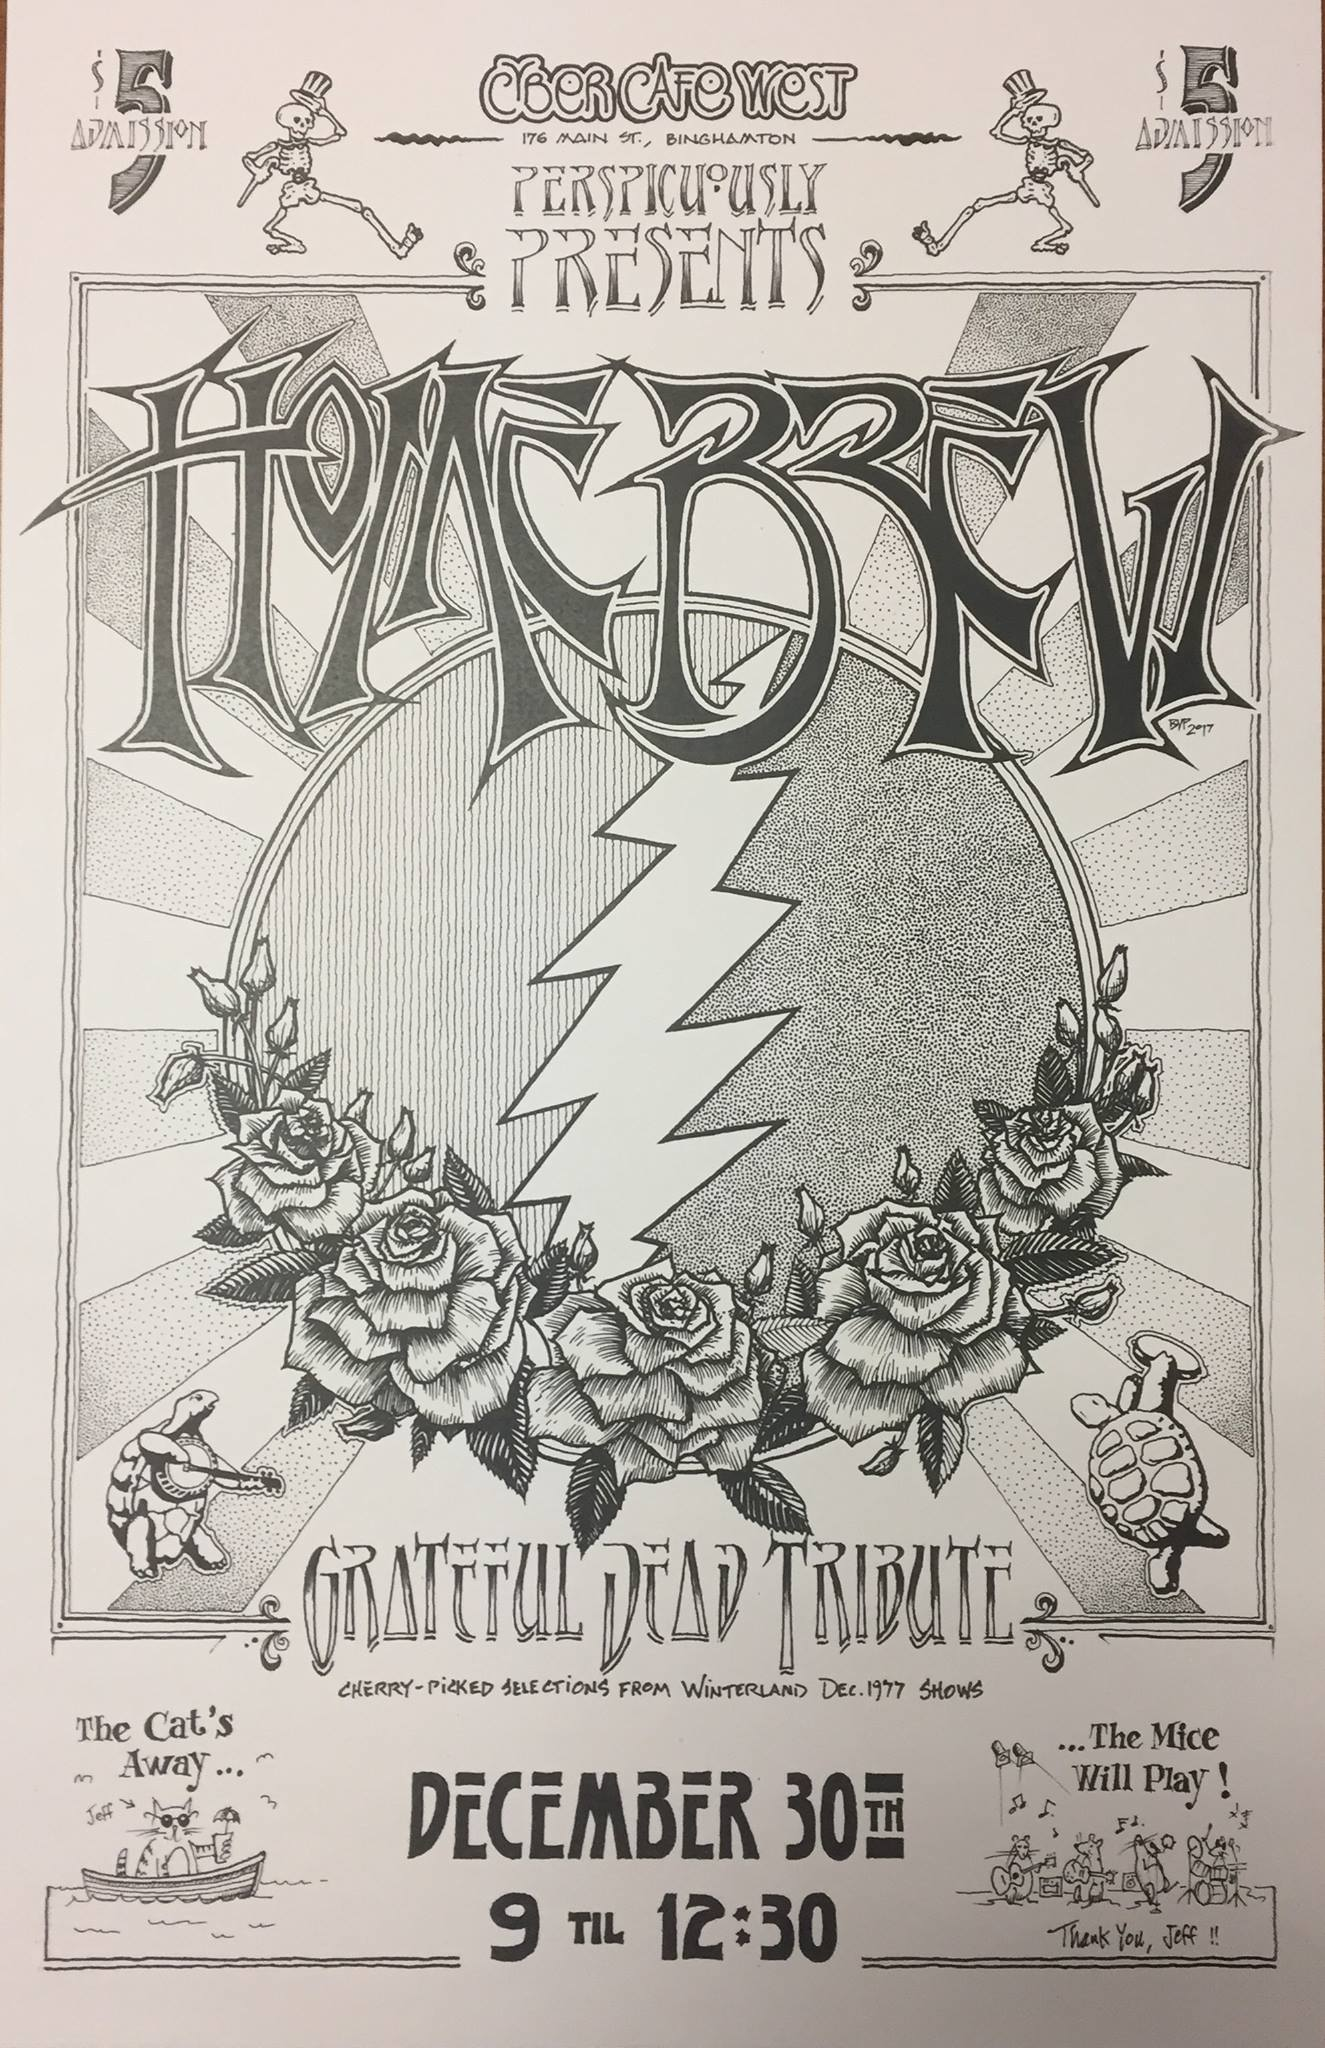 Home Brew plays Grateful Dead